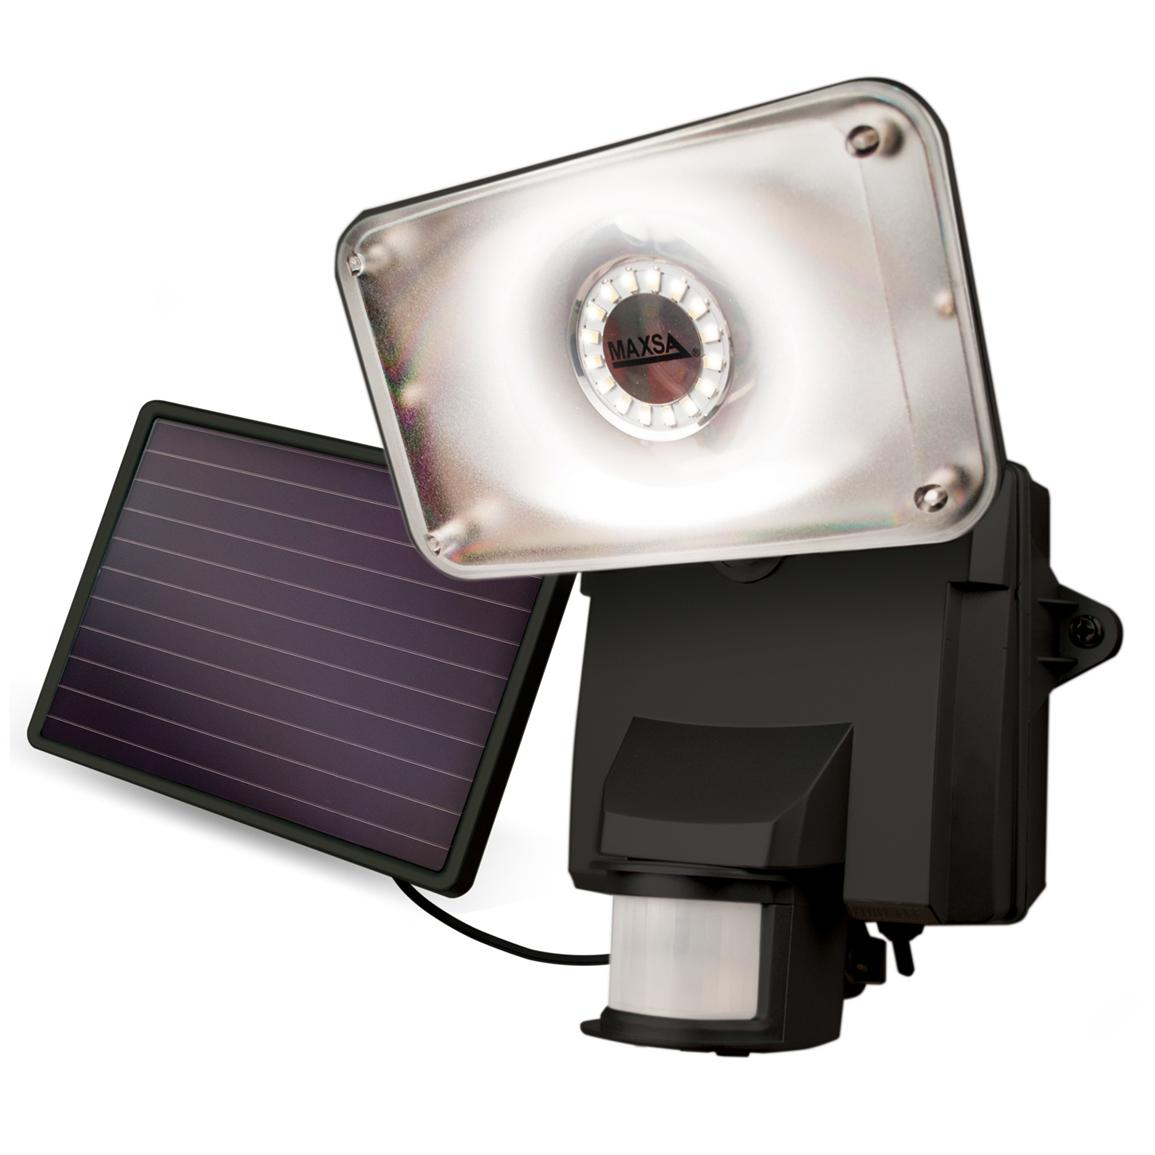 Maxsa® Motion-activated Solar LED Security Floodlight